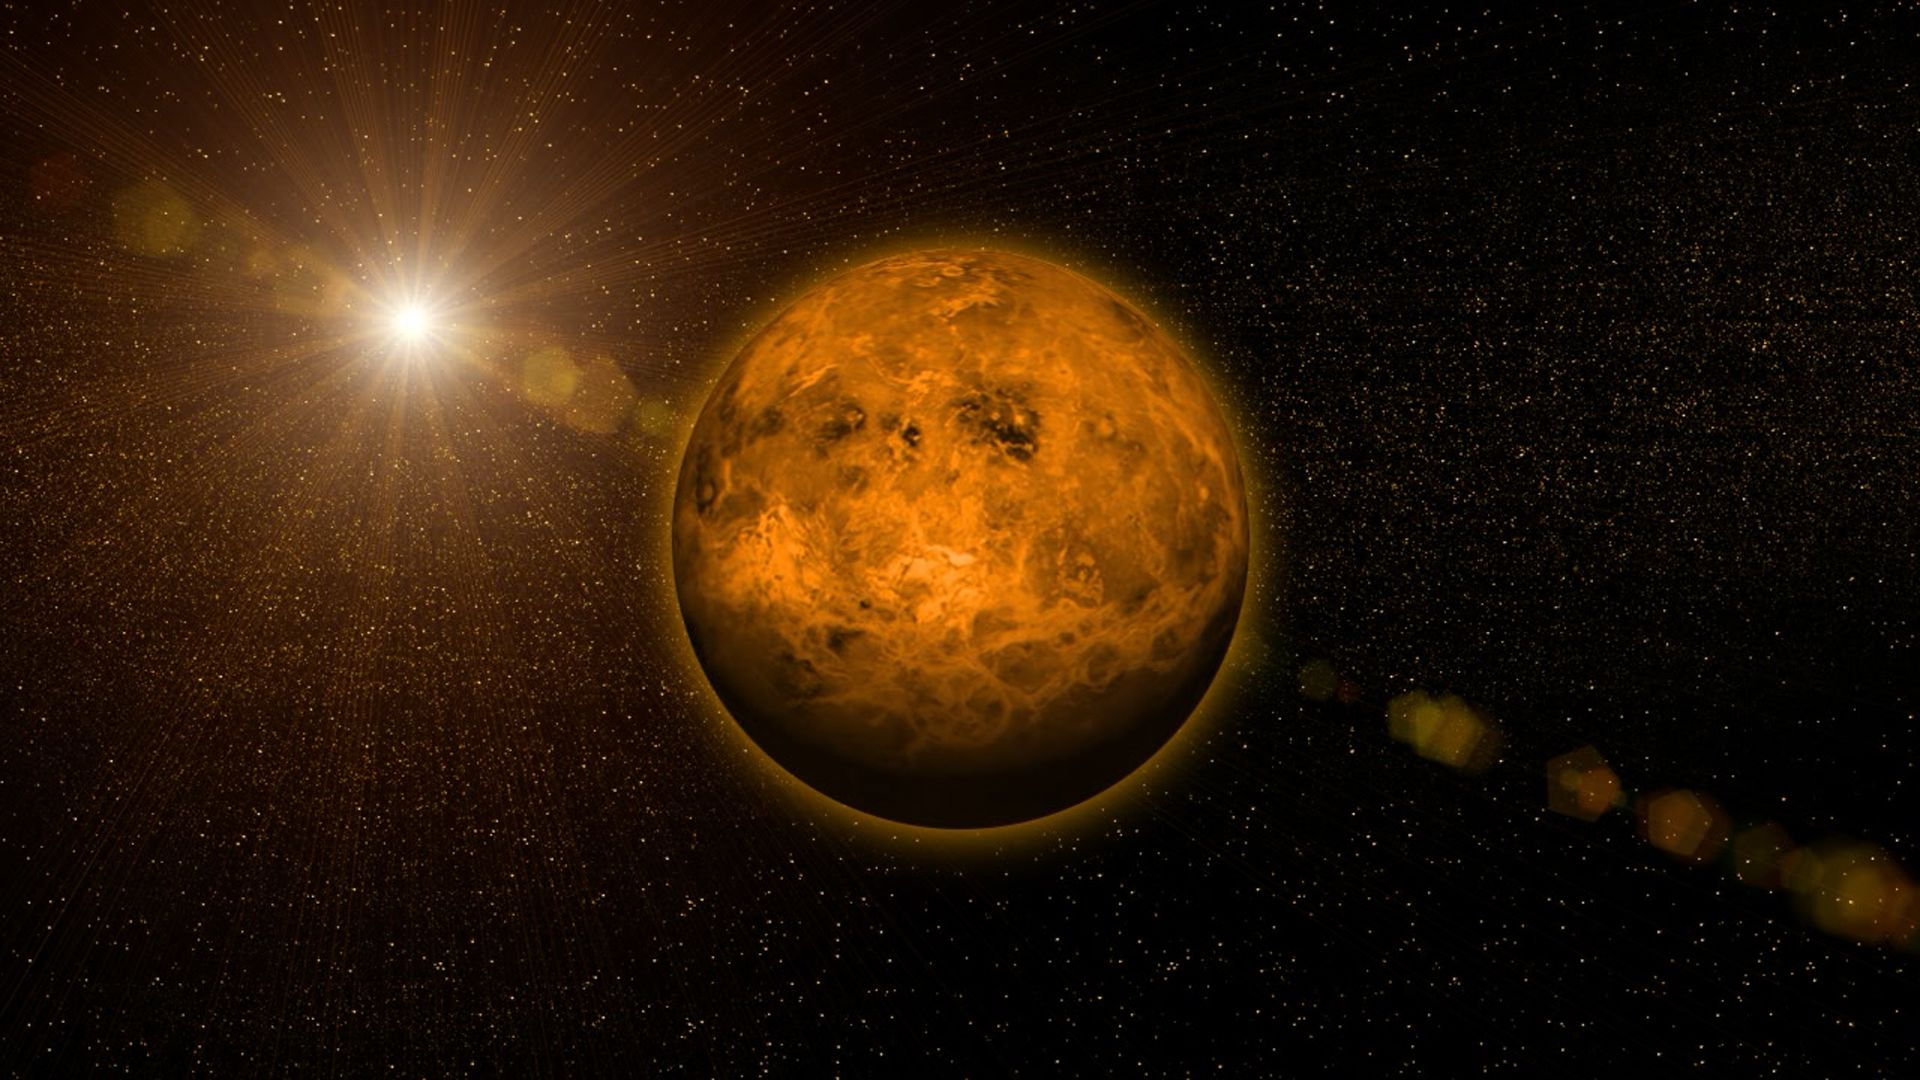 venus solar system exploration - photo #19